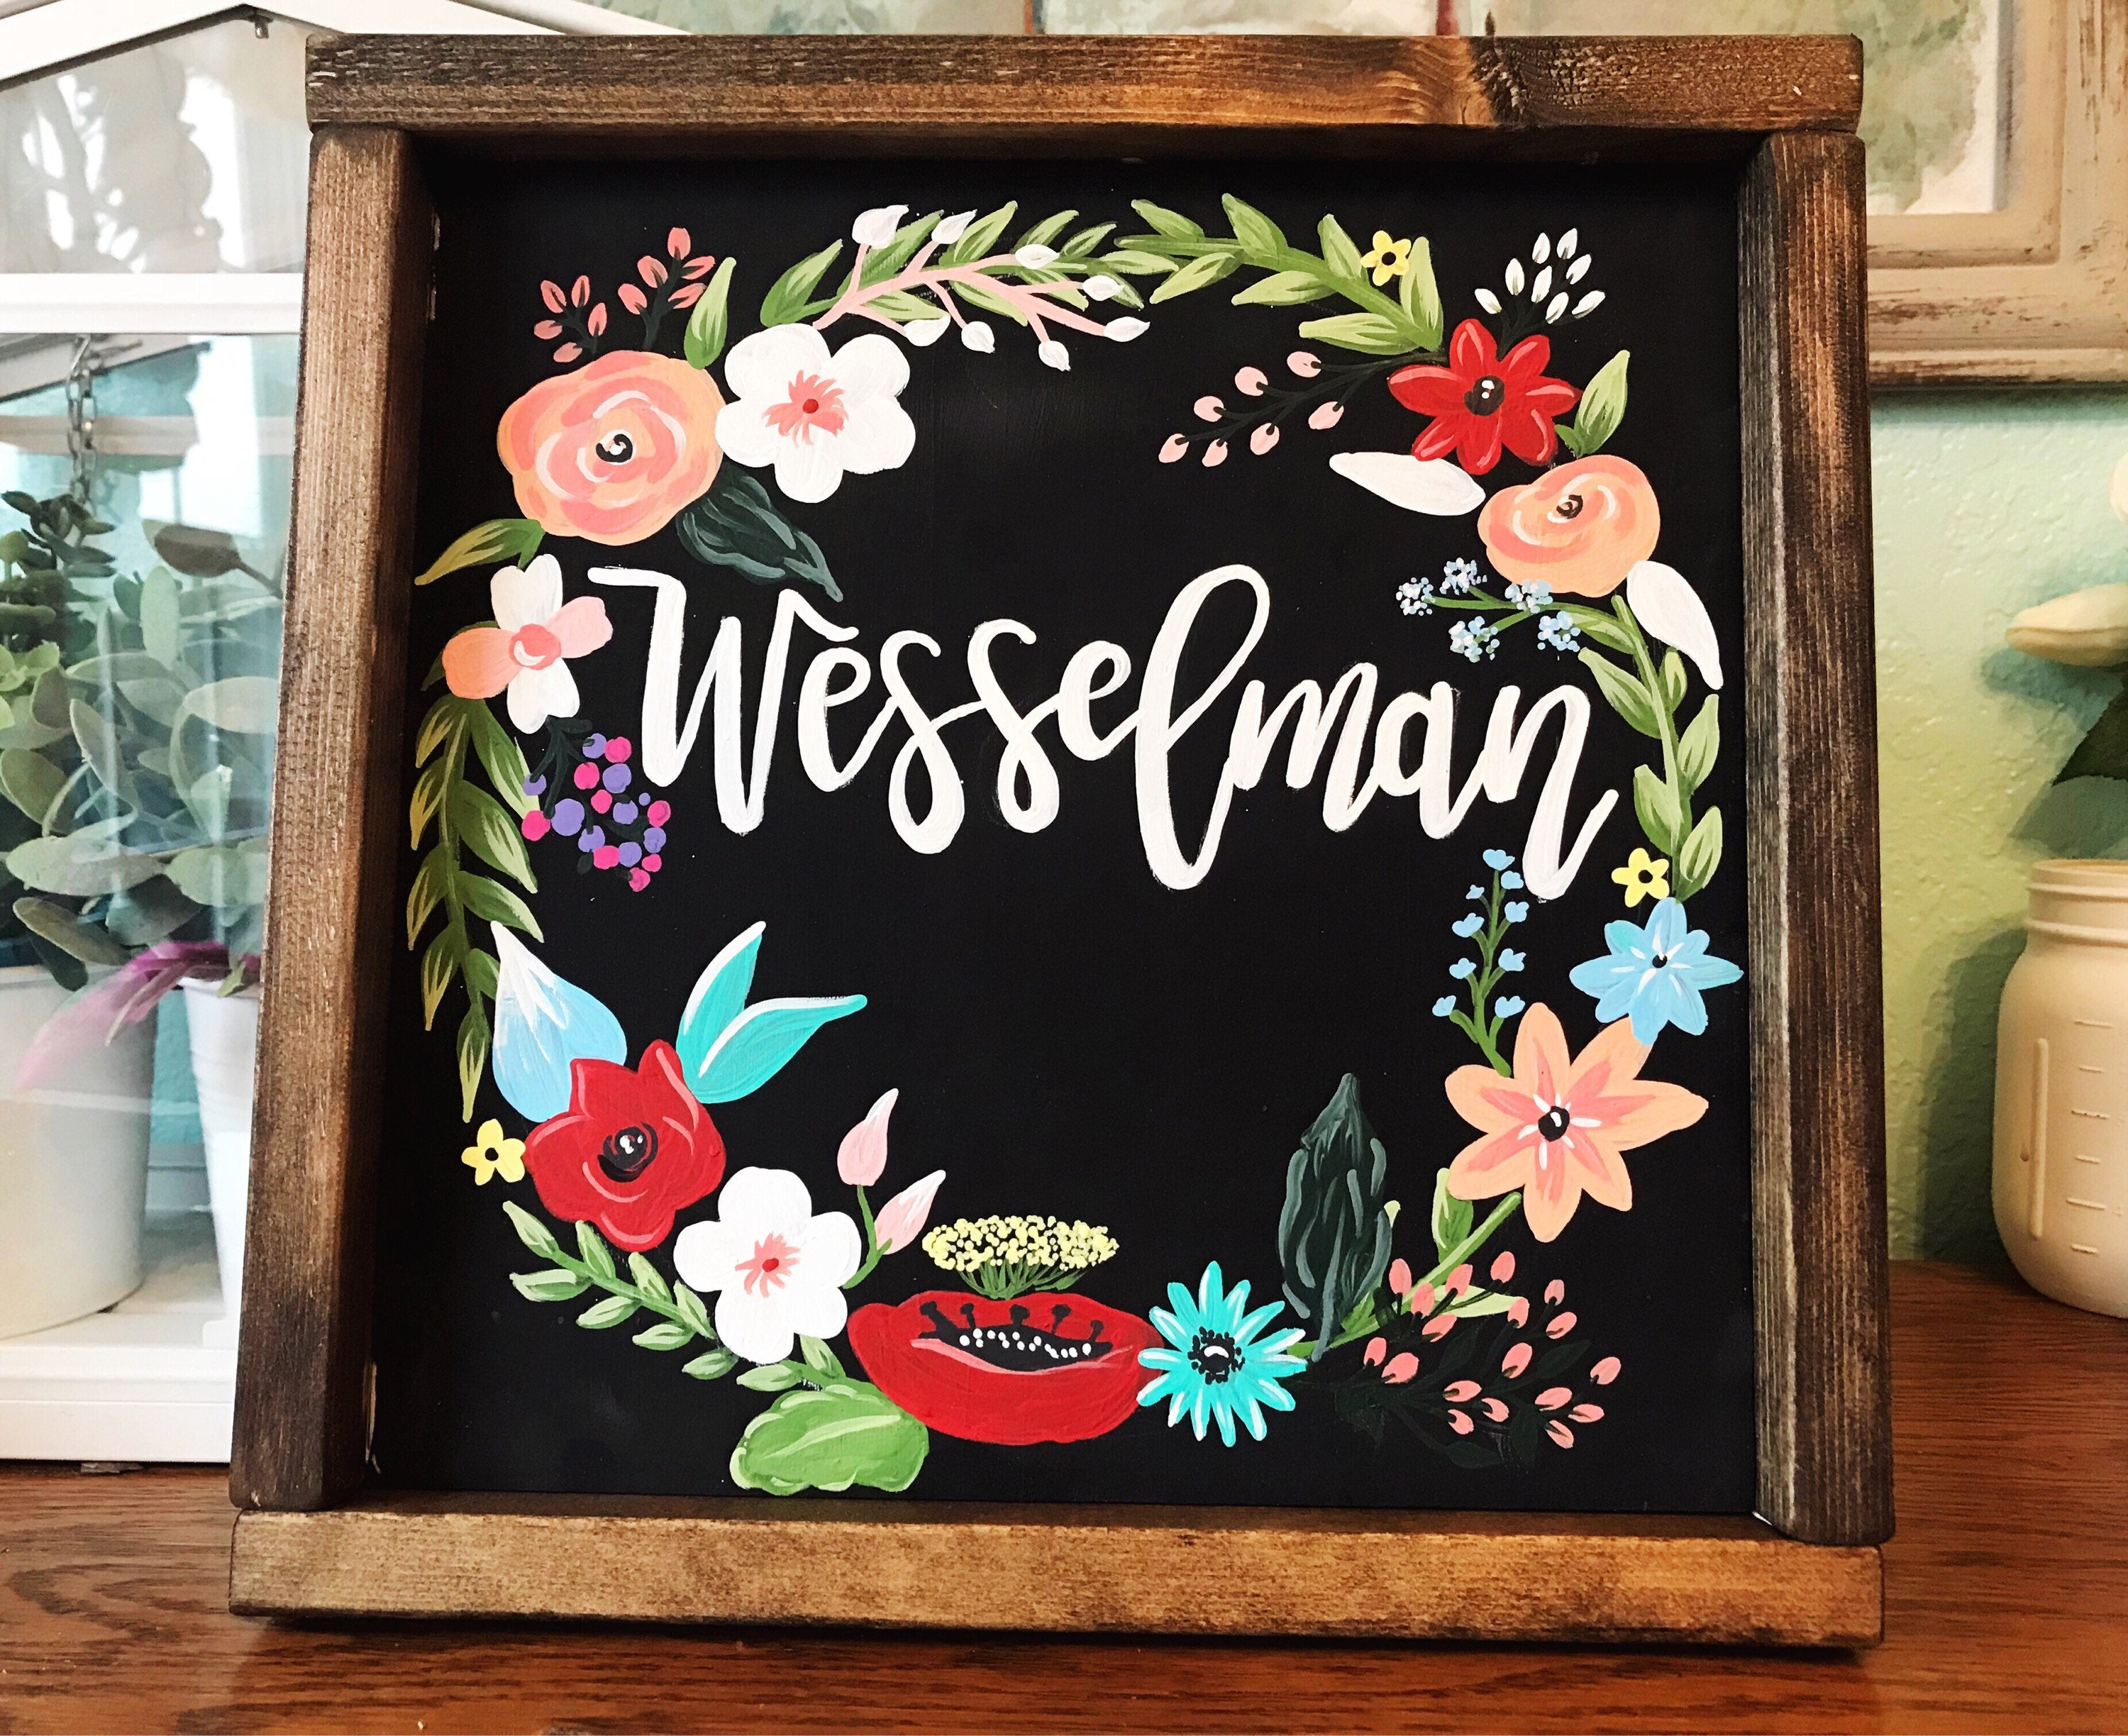 Hand Painted Wood Sign, Floral Wreath Sign, Floral Wall Decor, Hello Sign, Hand Painted Flowers, Gallery Wall Sign, Last Name Sign With Regard To Floral Wreath Wood Framed Wall Decor (View 7 of 30)